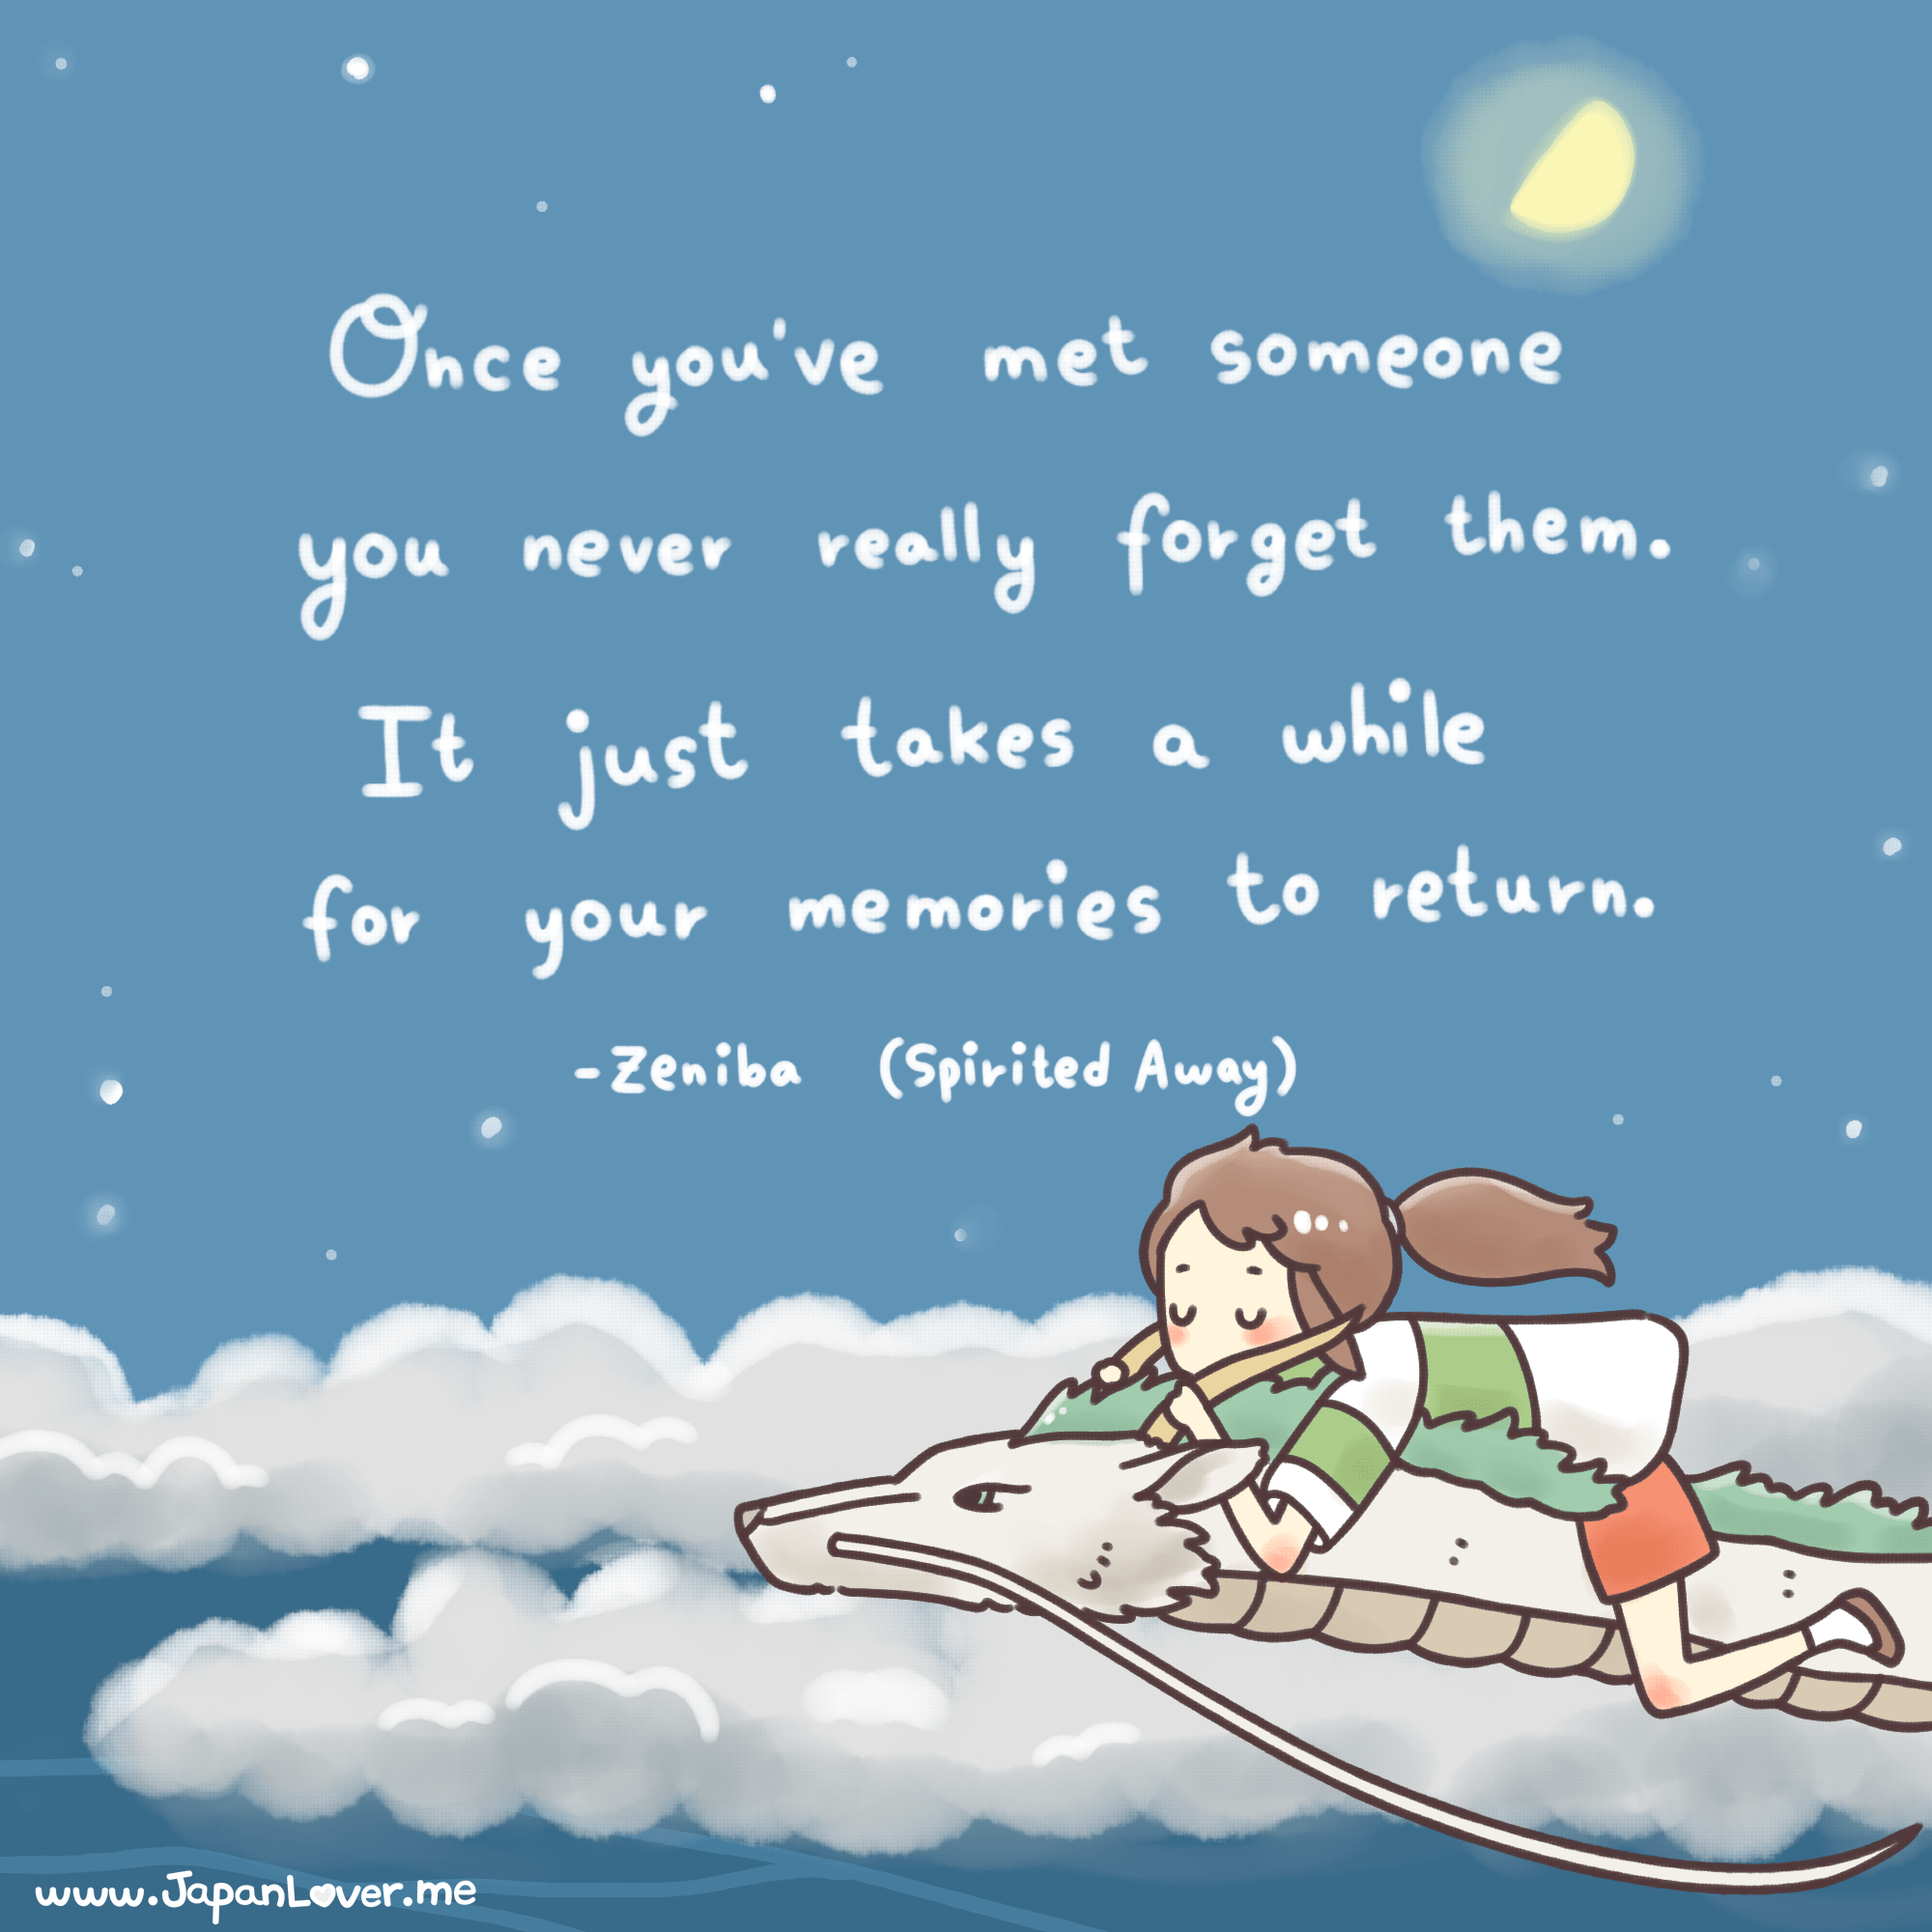 Spirited Away Quotes Enchanting Spiritedawayquote  Spirited Away  Pinterest  Studio Ghibli